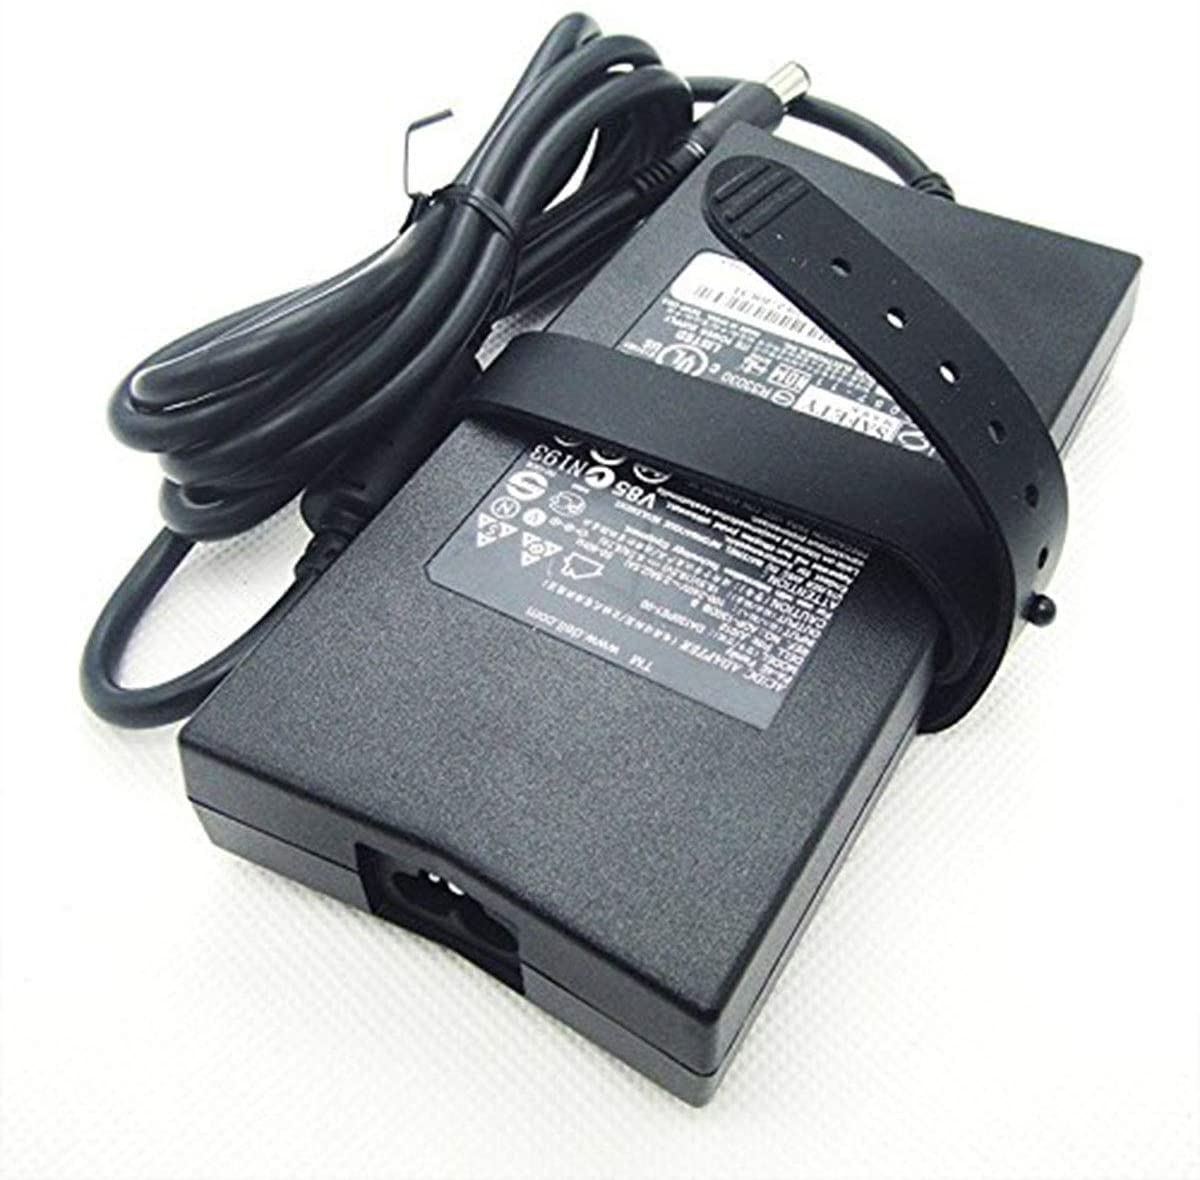 New ADP130DB B 19.5V 6.7A 130W DA130PE1-00 Tablet Power AC Charger Compatible with Dell Precision M4400 M4500 JU012 PA-4E Family Laptop Adapter